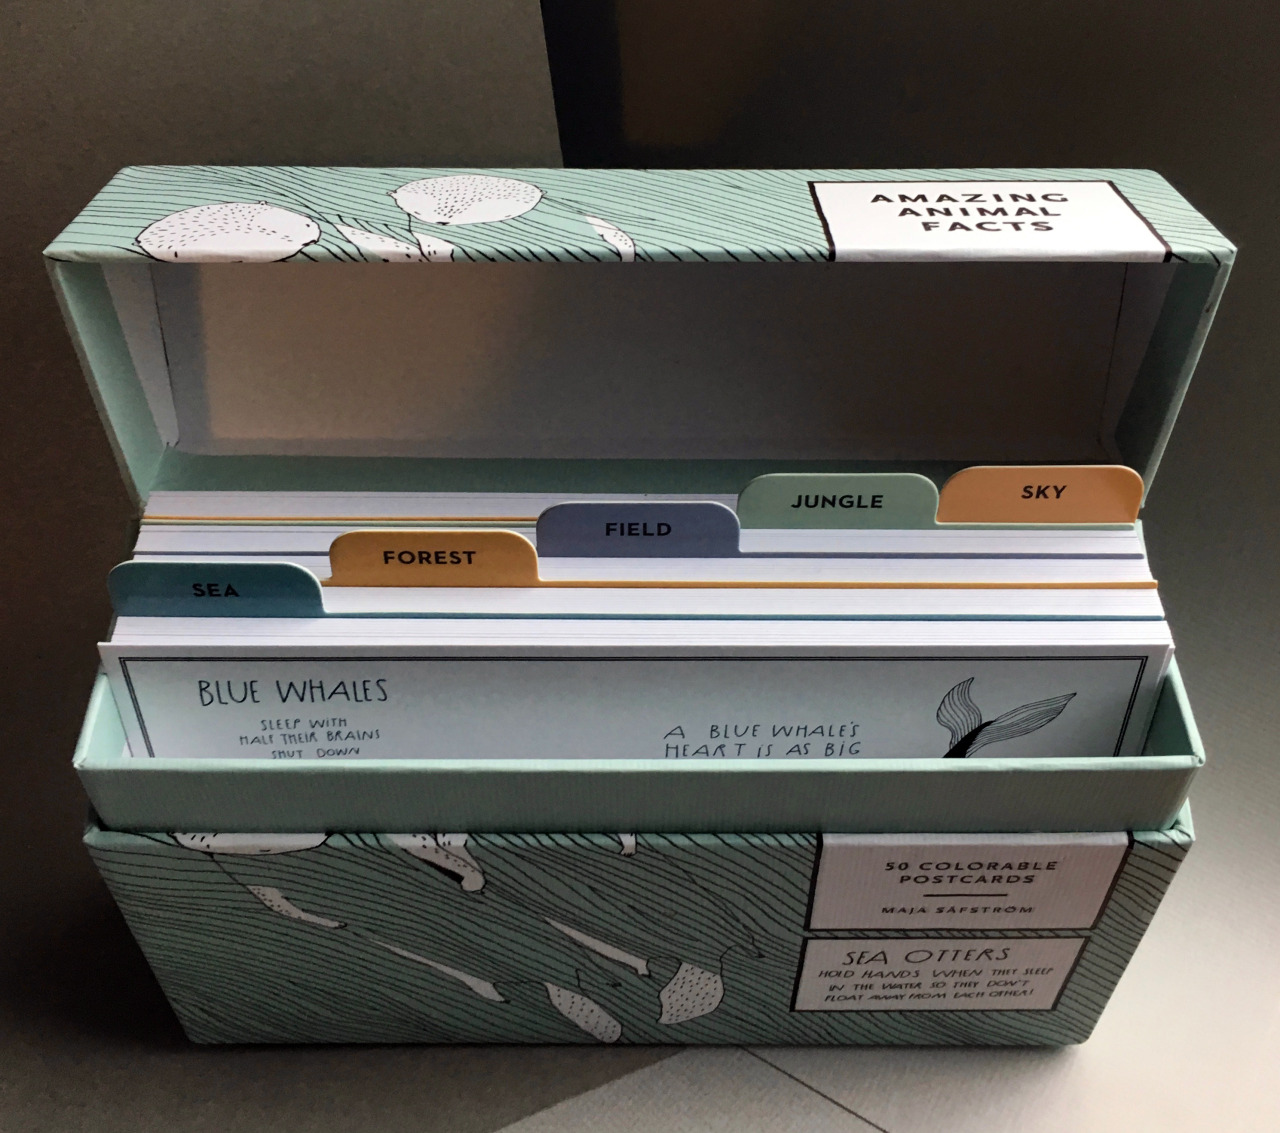 Instead of recipes for ambrosia, chow mein, or Green Bean Bunwiches, this card file box holds charming drawings of zebras, sloths, cockroaches, and flamingos (some are more charming than others).